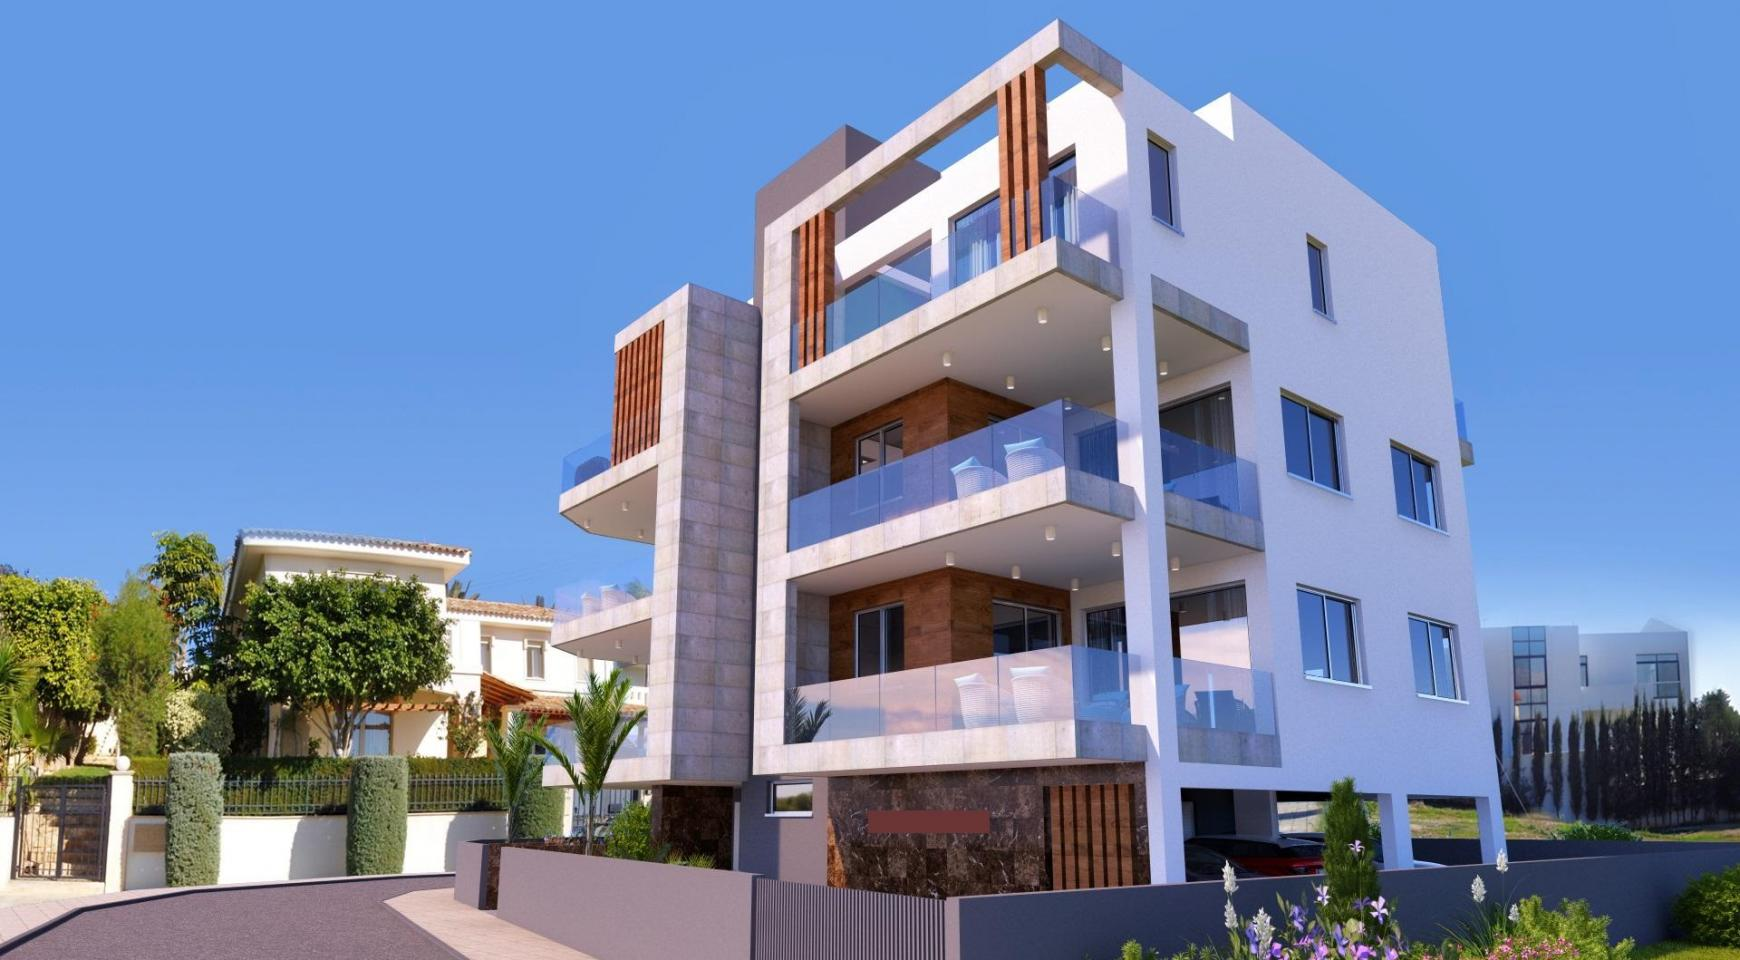 New 2 Bedroom Apartment in a Contemporary Building in Potamos Germasogeia - 2